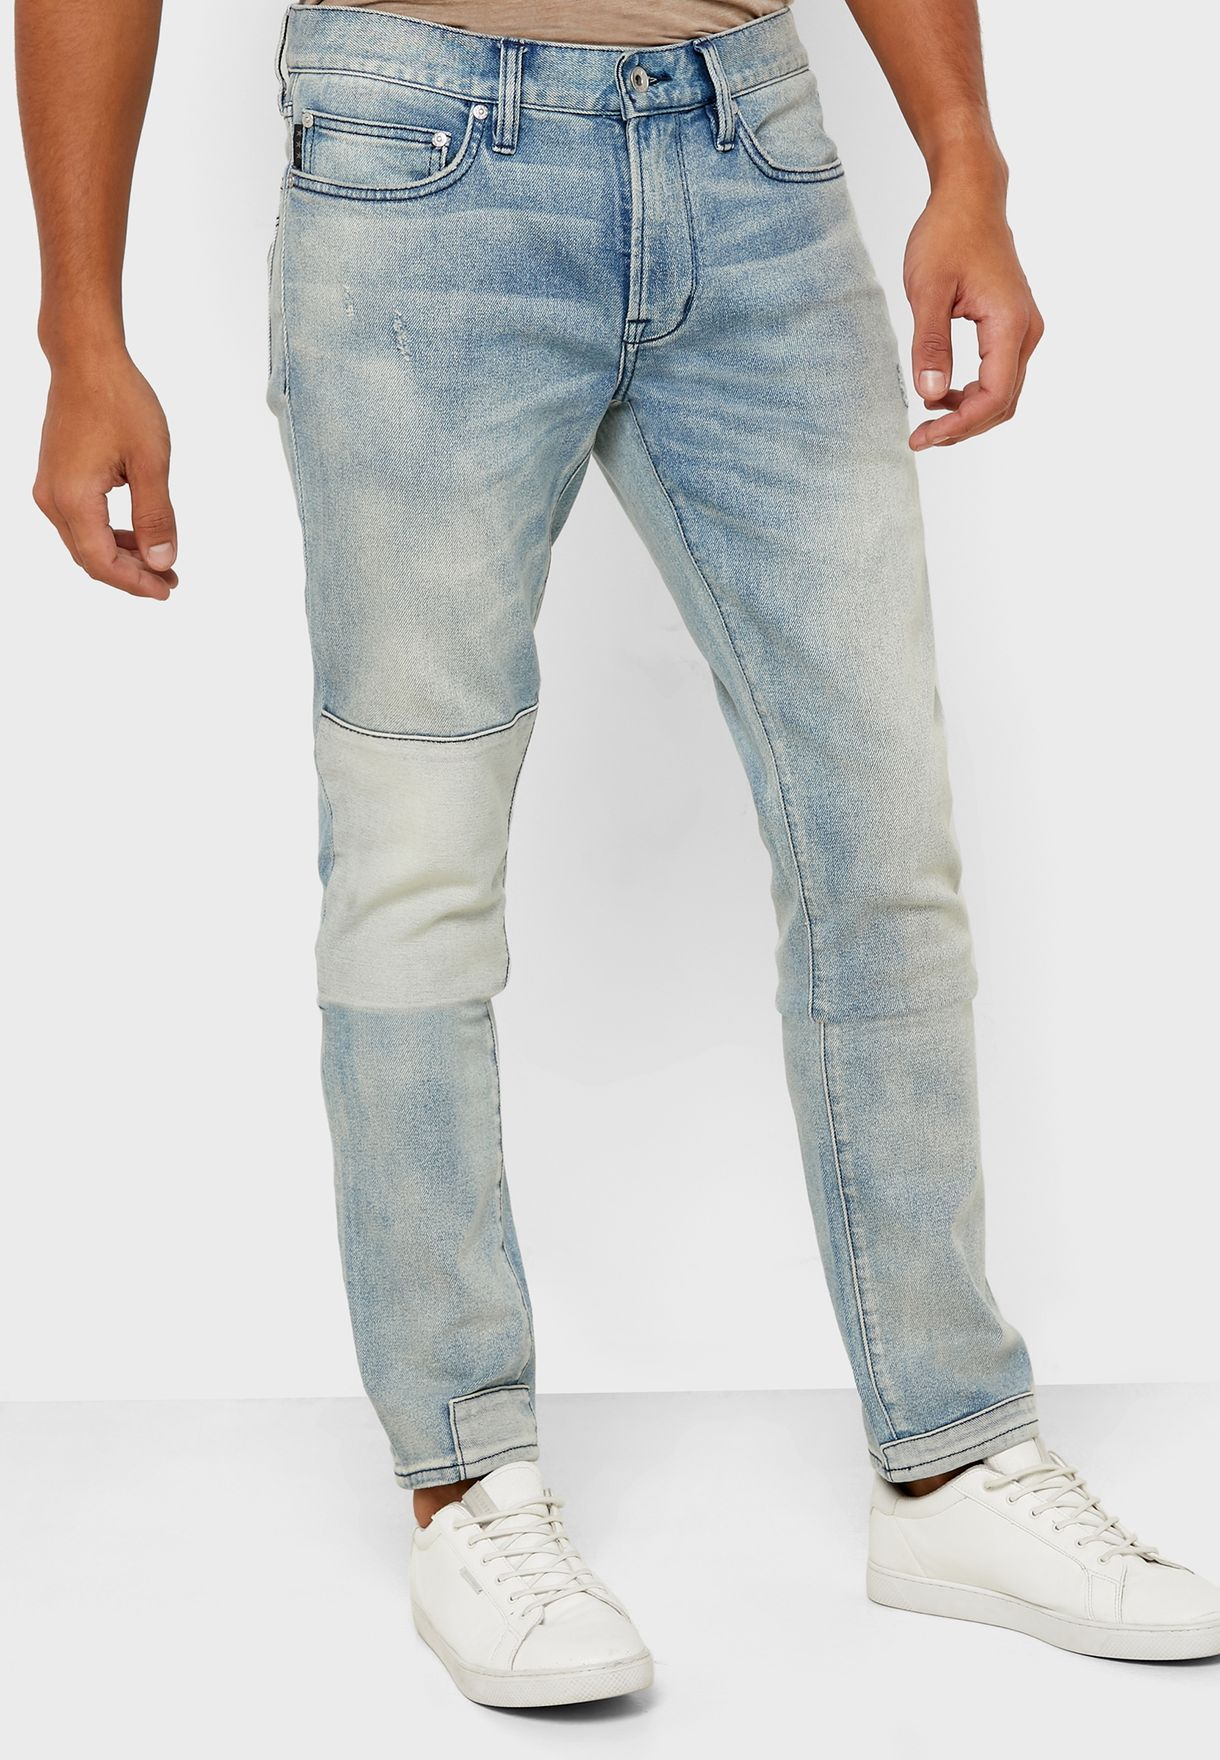 Wight Skinny Fit Light Wash Jeans